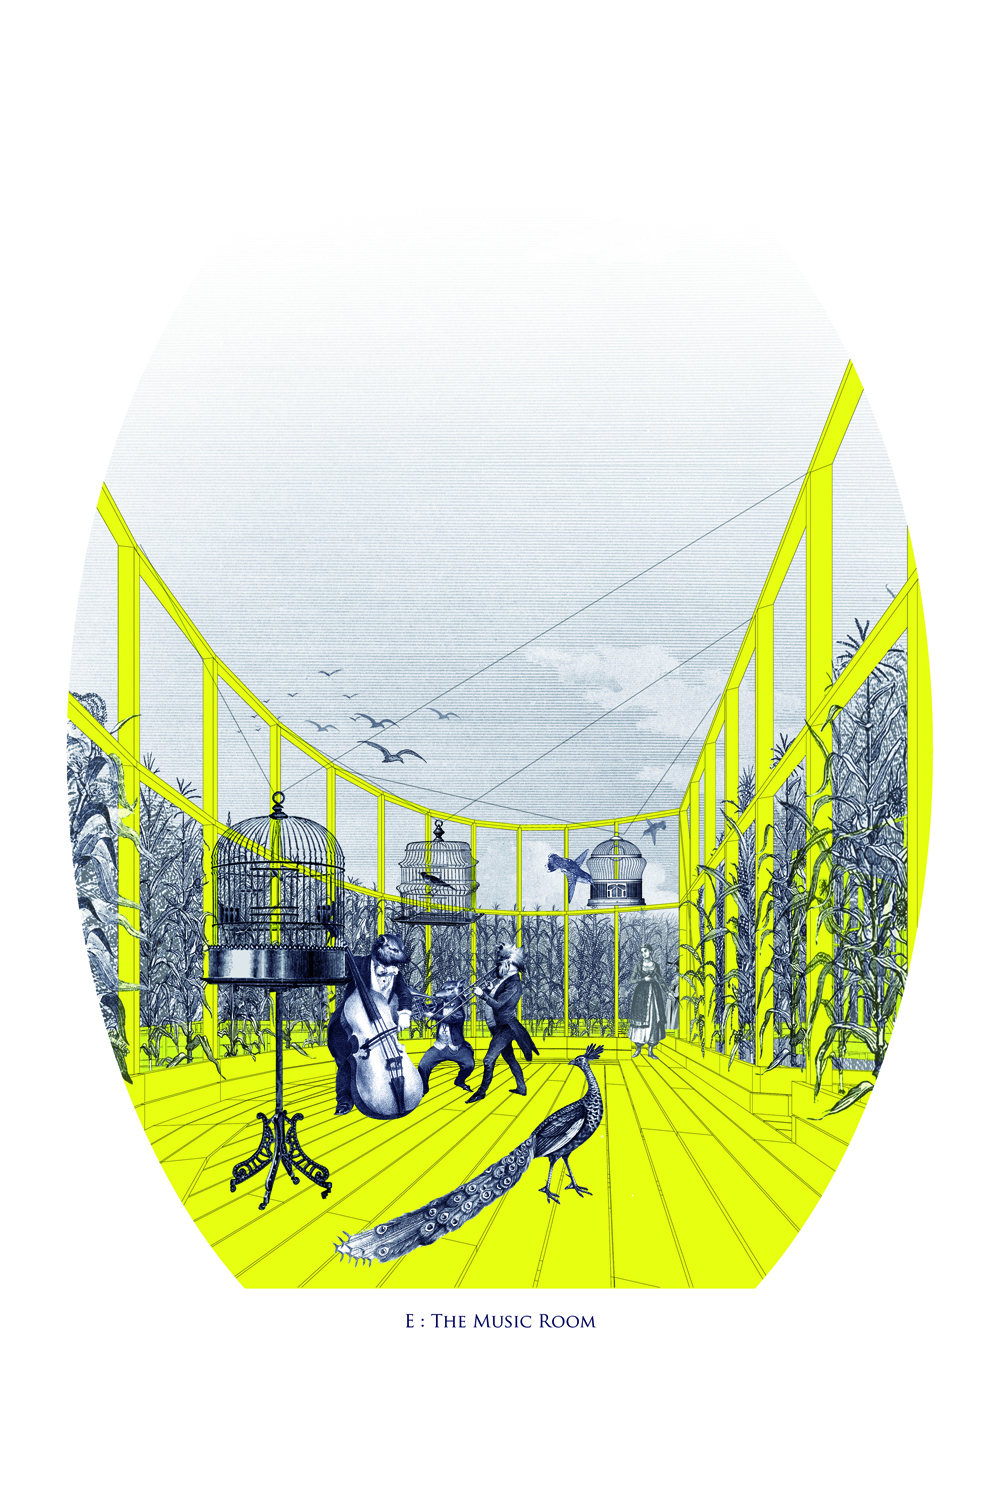 "Proposta vencedora do YAP_Constructo 2012: ""The Garden of Forking Paths"" / Beals & Lyon, Cortesia Beals & Lyon"